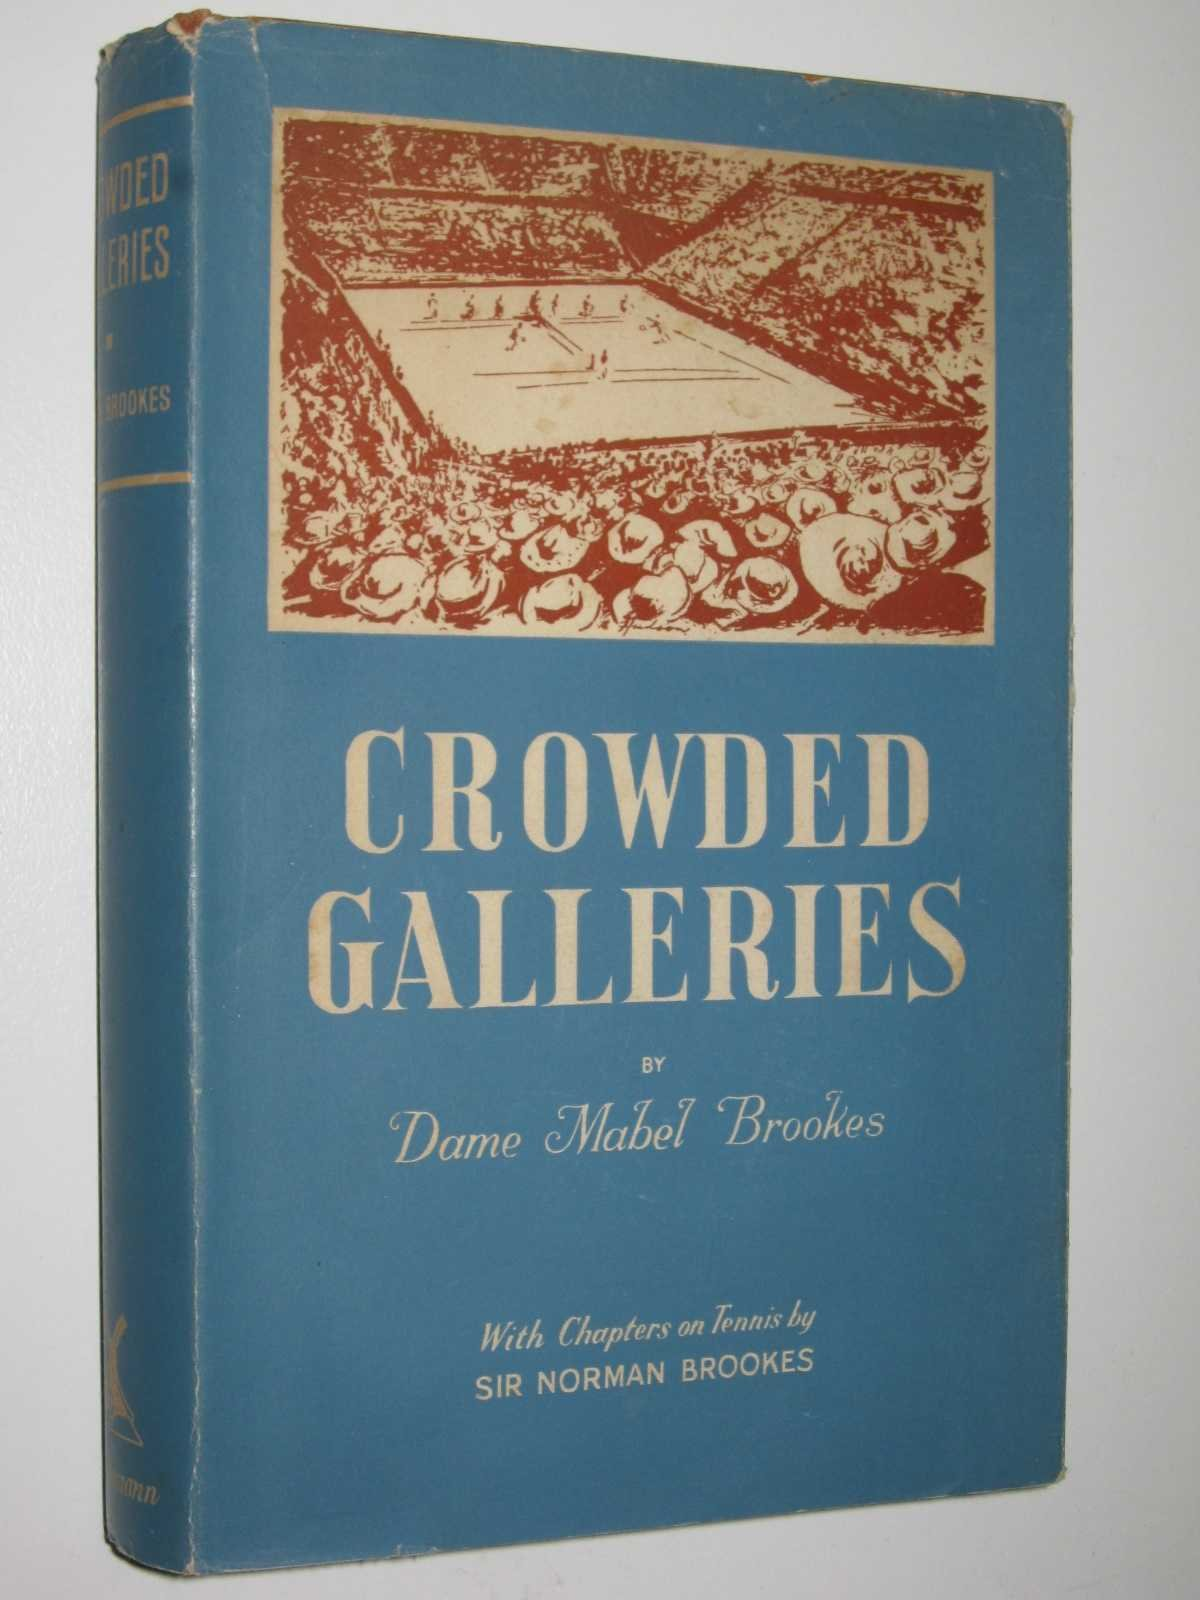 CROWDED GALLERIES With Chapters on Tennis by Sir Norman Brookes